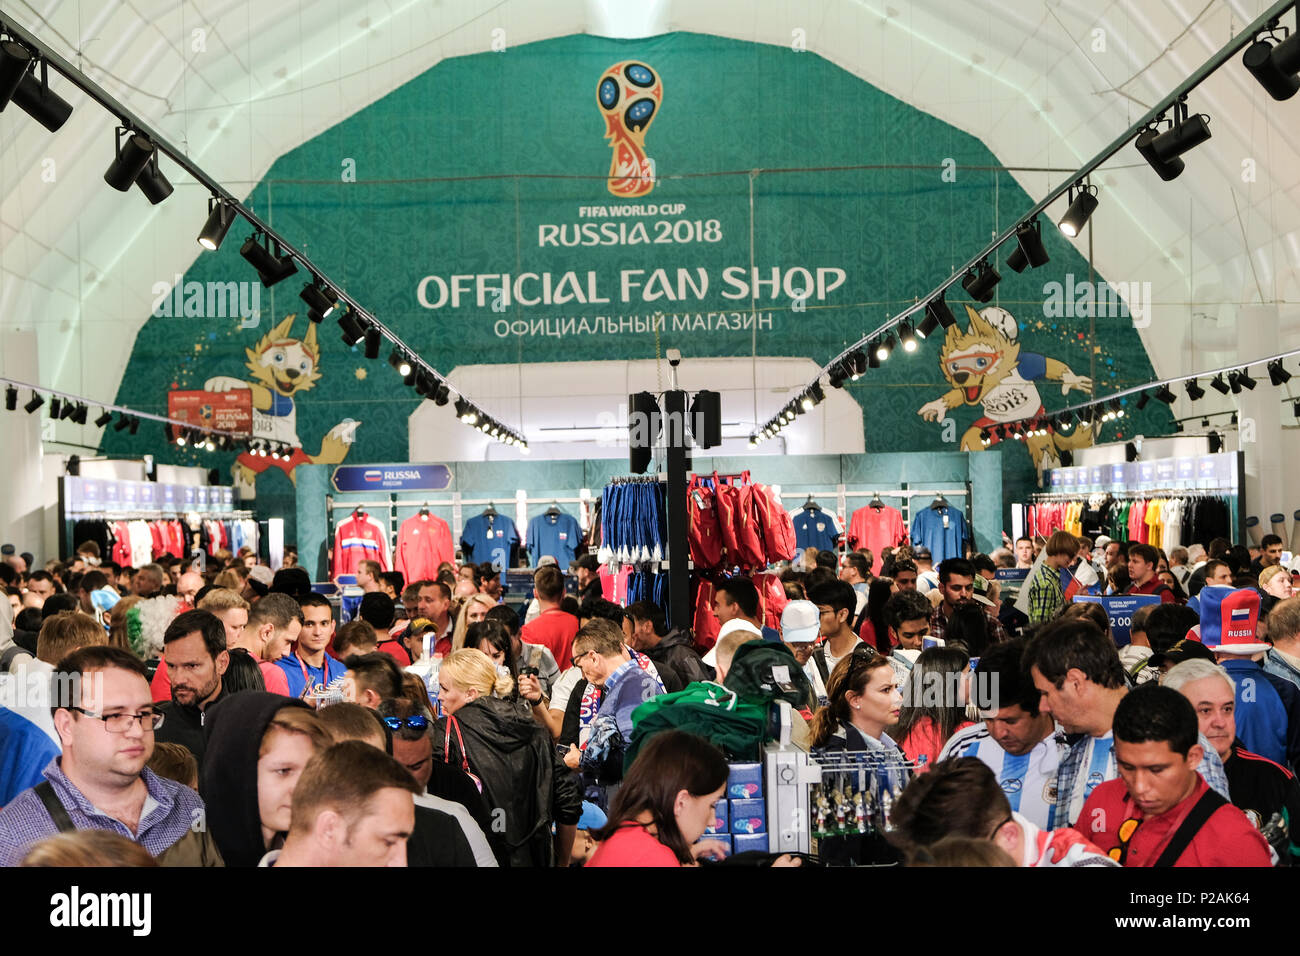 Moscow, Russia. 13th Jun 2018. First match of FIFA 2018 World Football championship. Official Fan Shop Credit: Marco Ciccolella/Alamy Live News - Stock Image